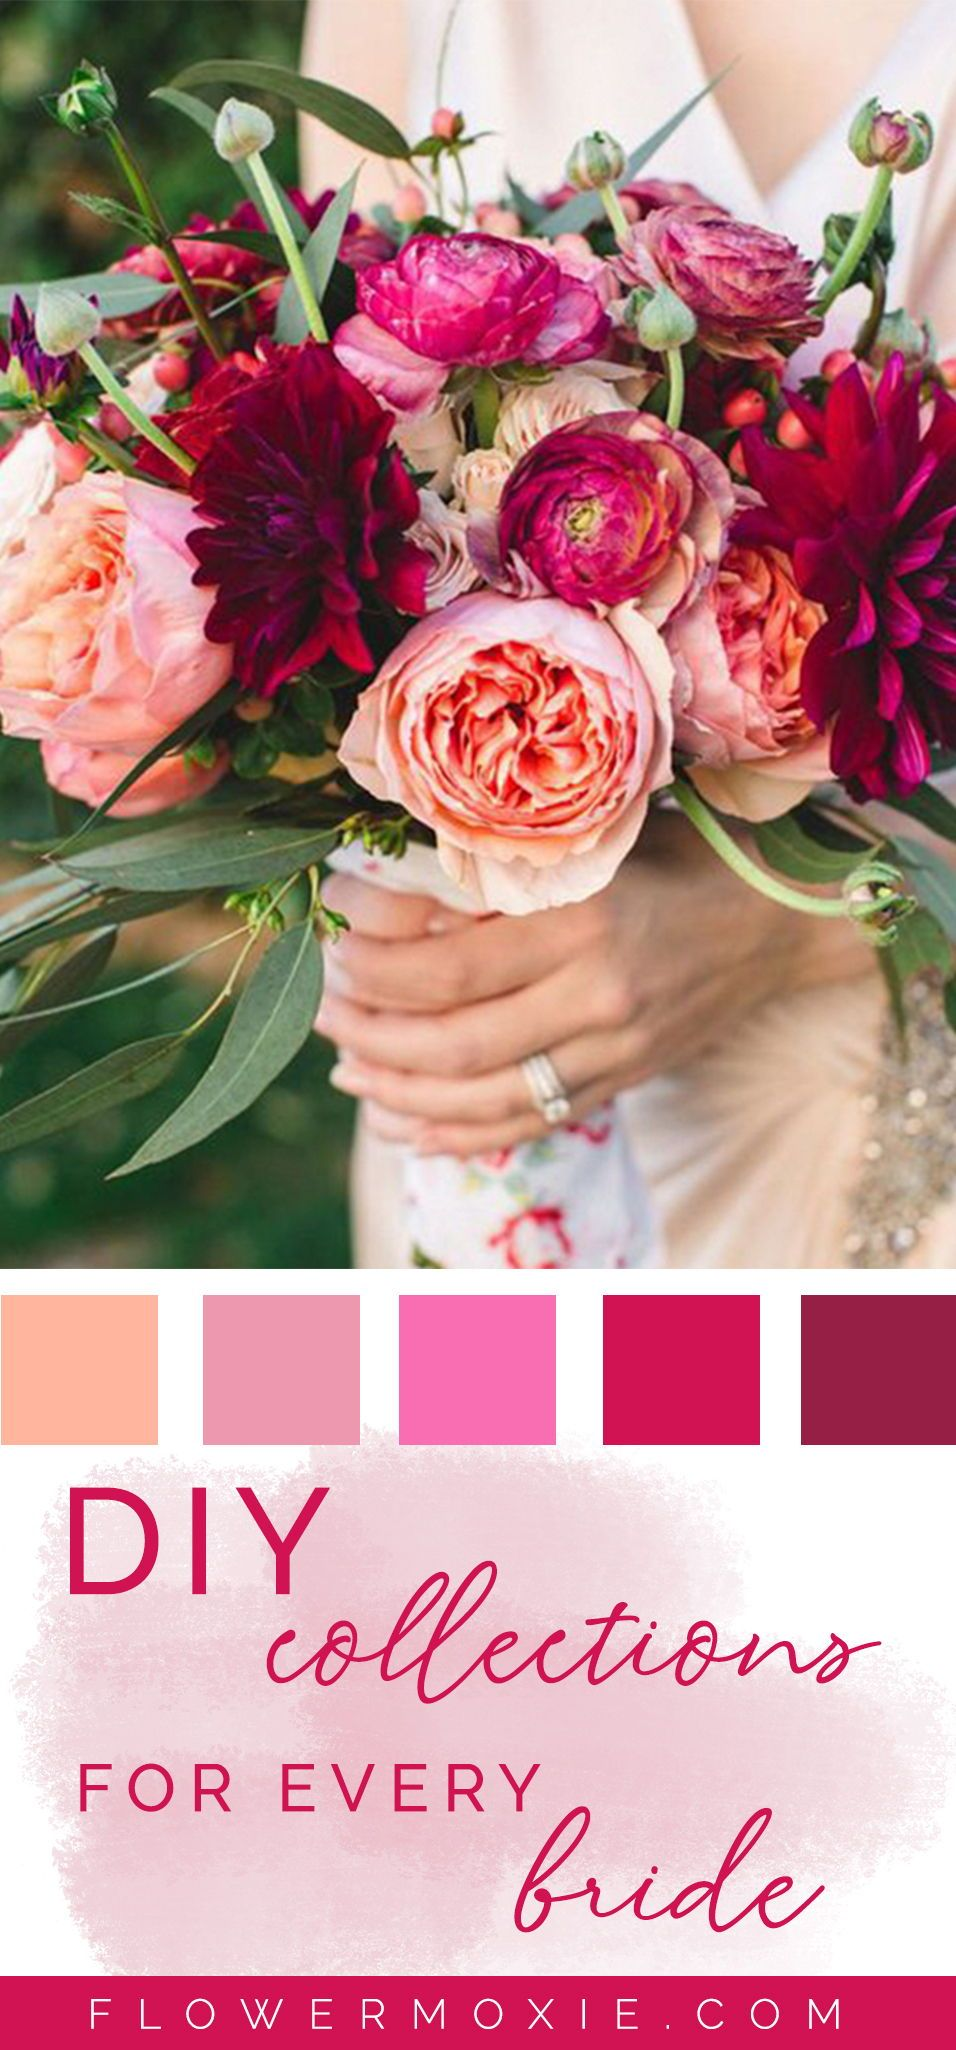 Get Inspired By Our Wedding Flower Packages Mix Match Flowers To Achieve The Look You Wan Diy Bridesmaid Bouquet Diy Wedding Bouquet Wedding Flower Packages